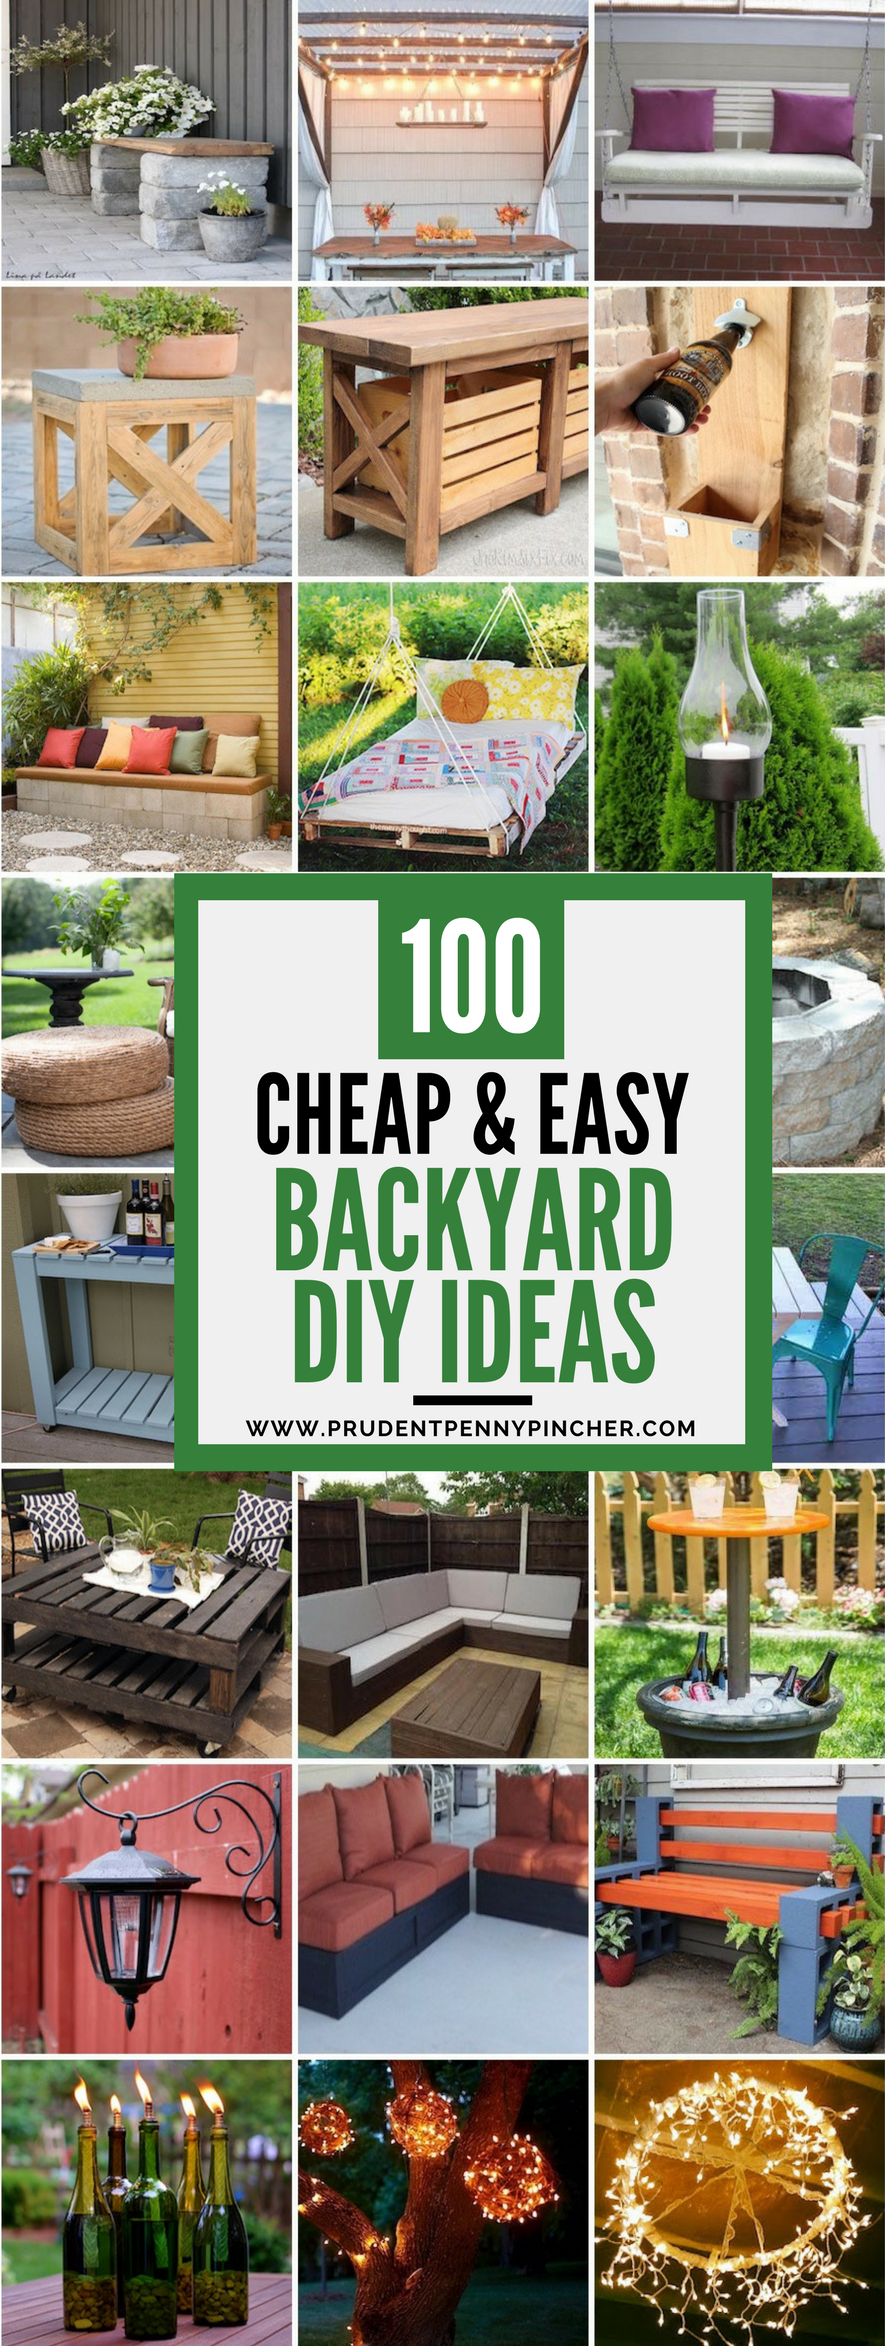 100 cheap and easy diy backyard ideas | diy backyard ideas